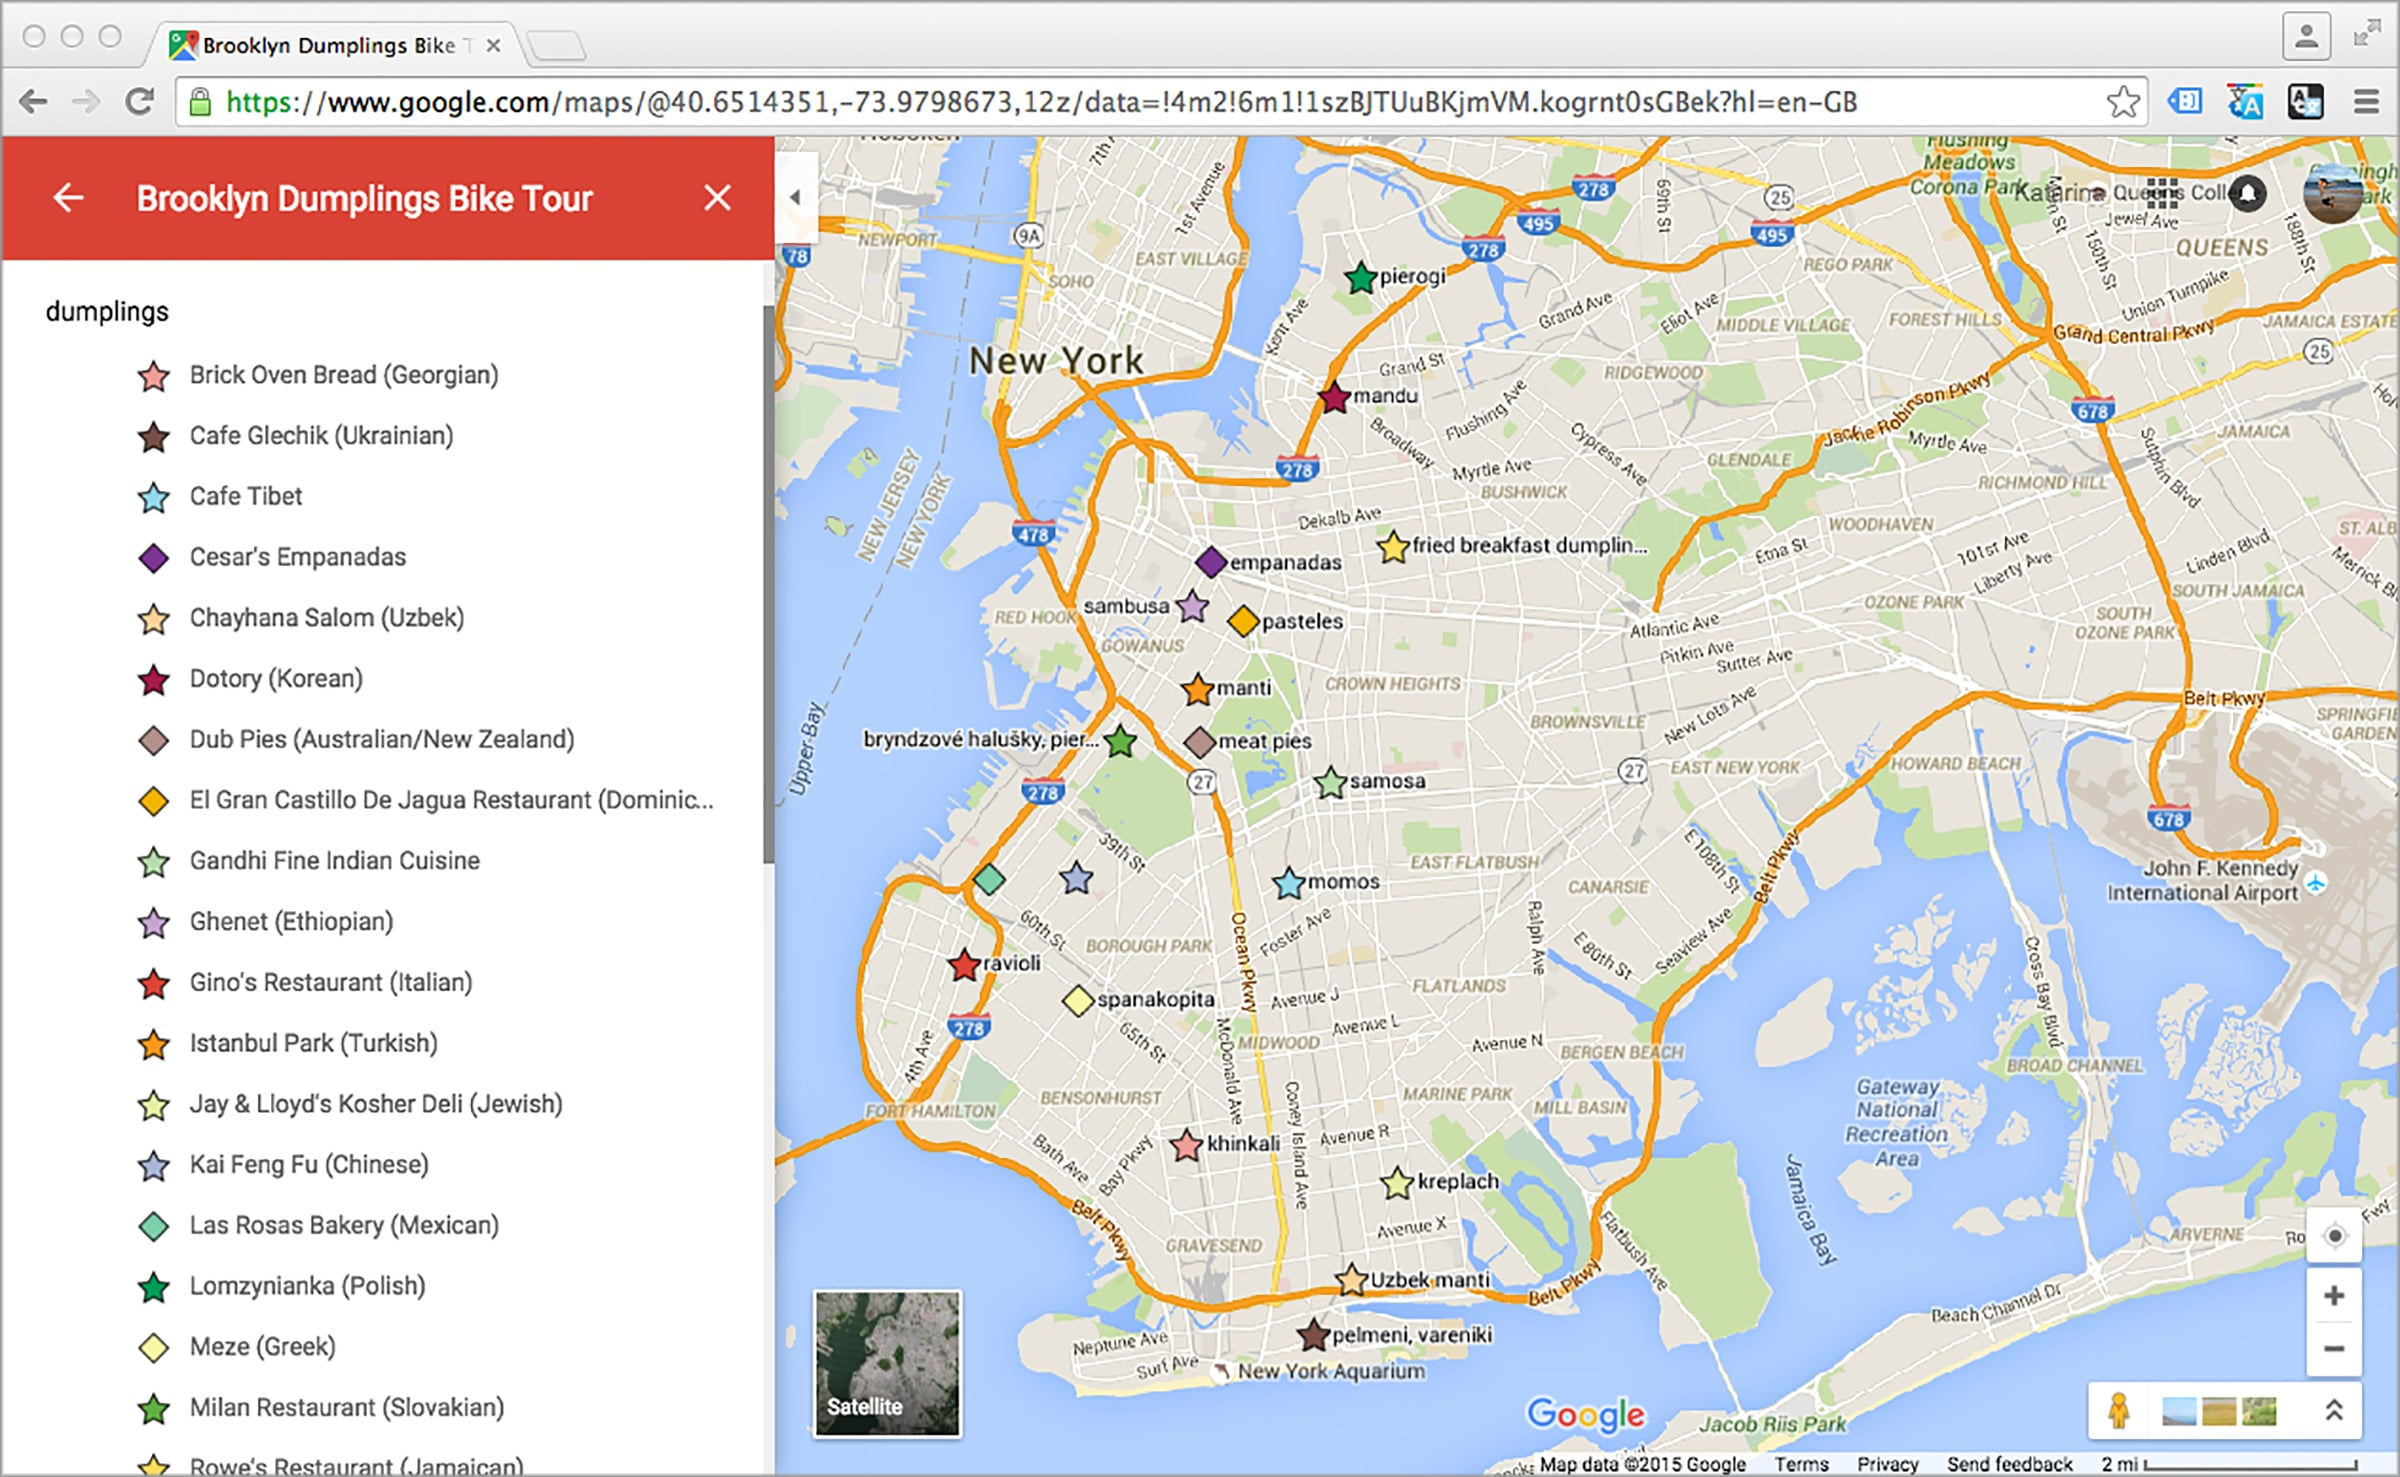 bk-dumpling-bike-map.jpg